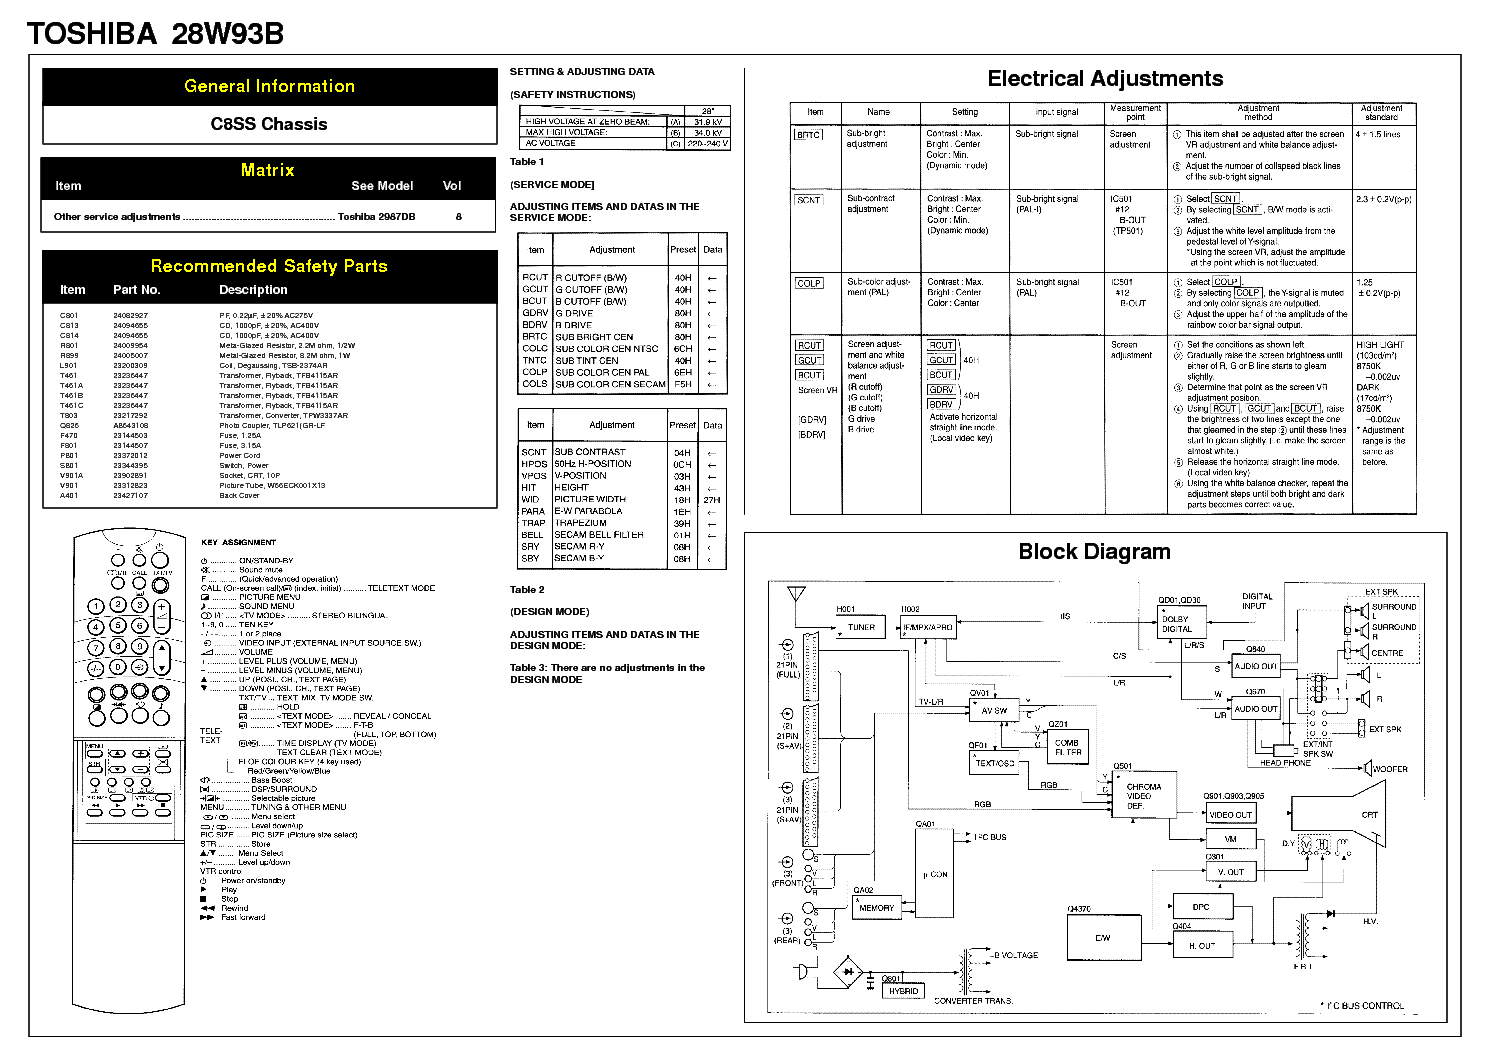 TOSHIBA C8SS CHASSIS 28W93B Service Manual download